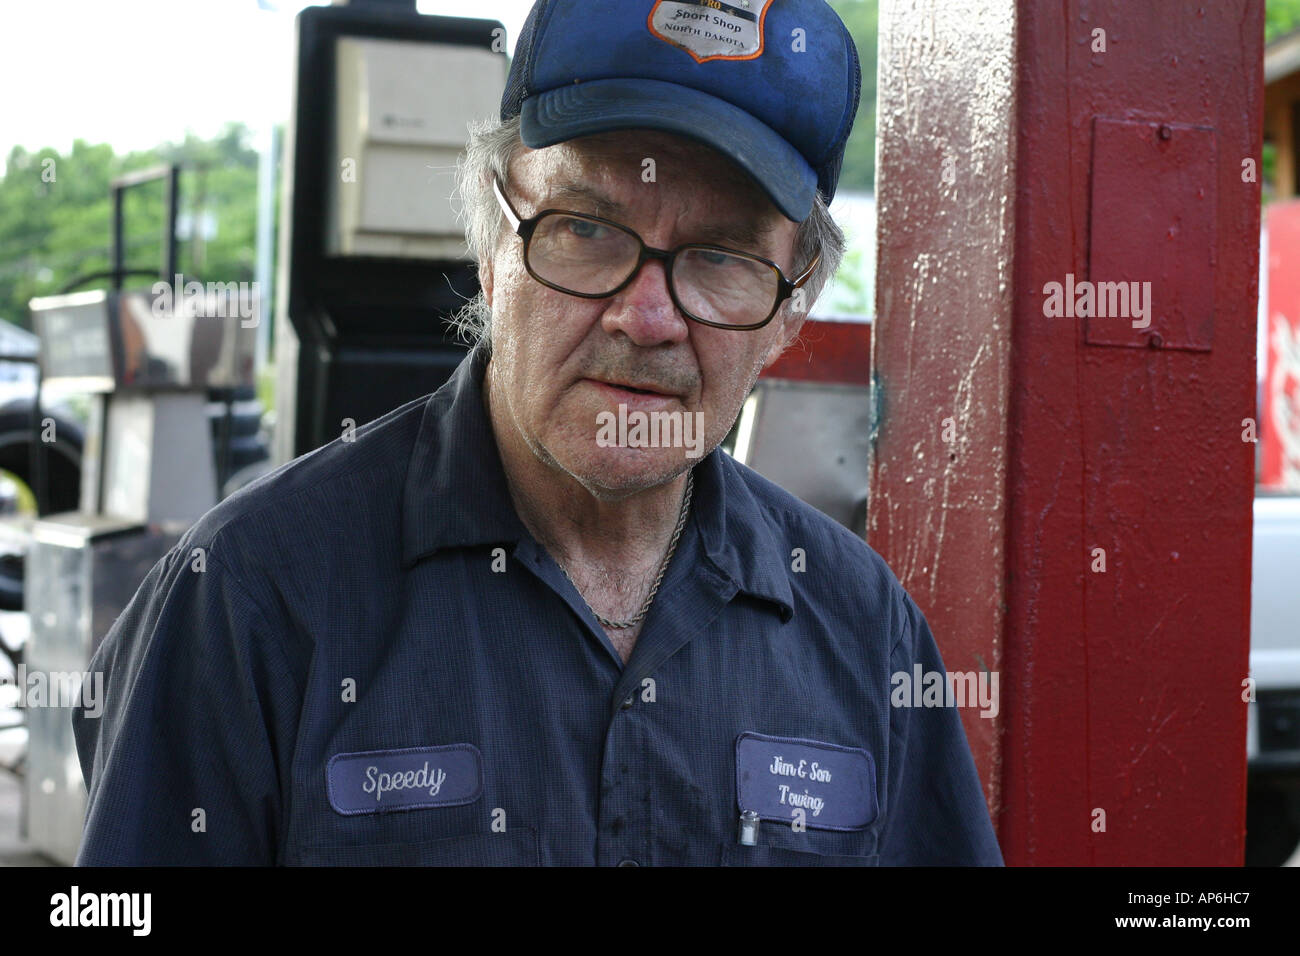 gas station attendant older man with cap and uniform on in north carolina usa